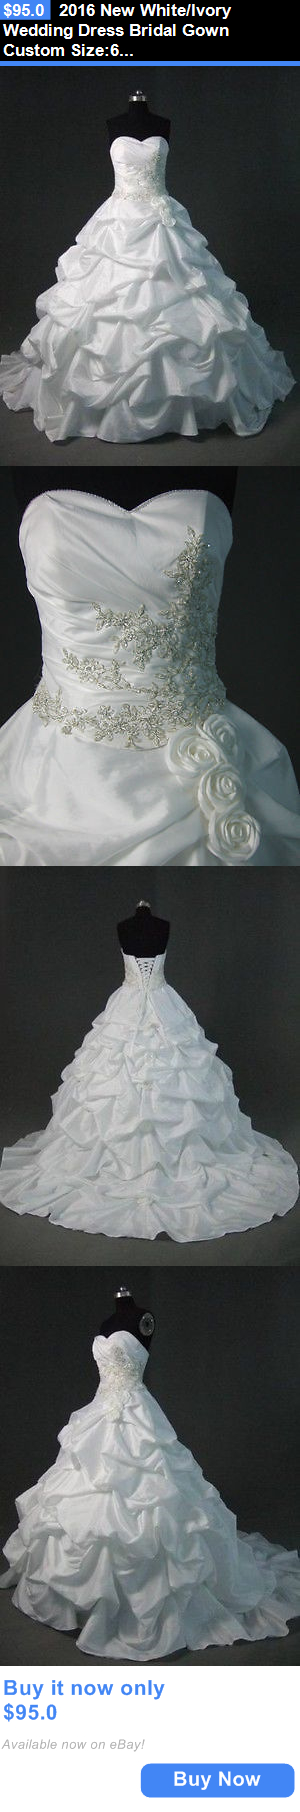 Wedding Dresses: 2016 New White/Ivory Wedding Dress Bridal Gown Custom Size:6/8/10/12/14/16/18/20 BUY IT NOW ONLY: $95.0